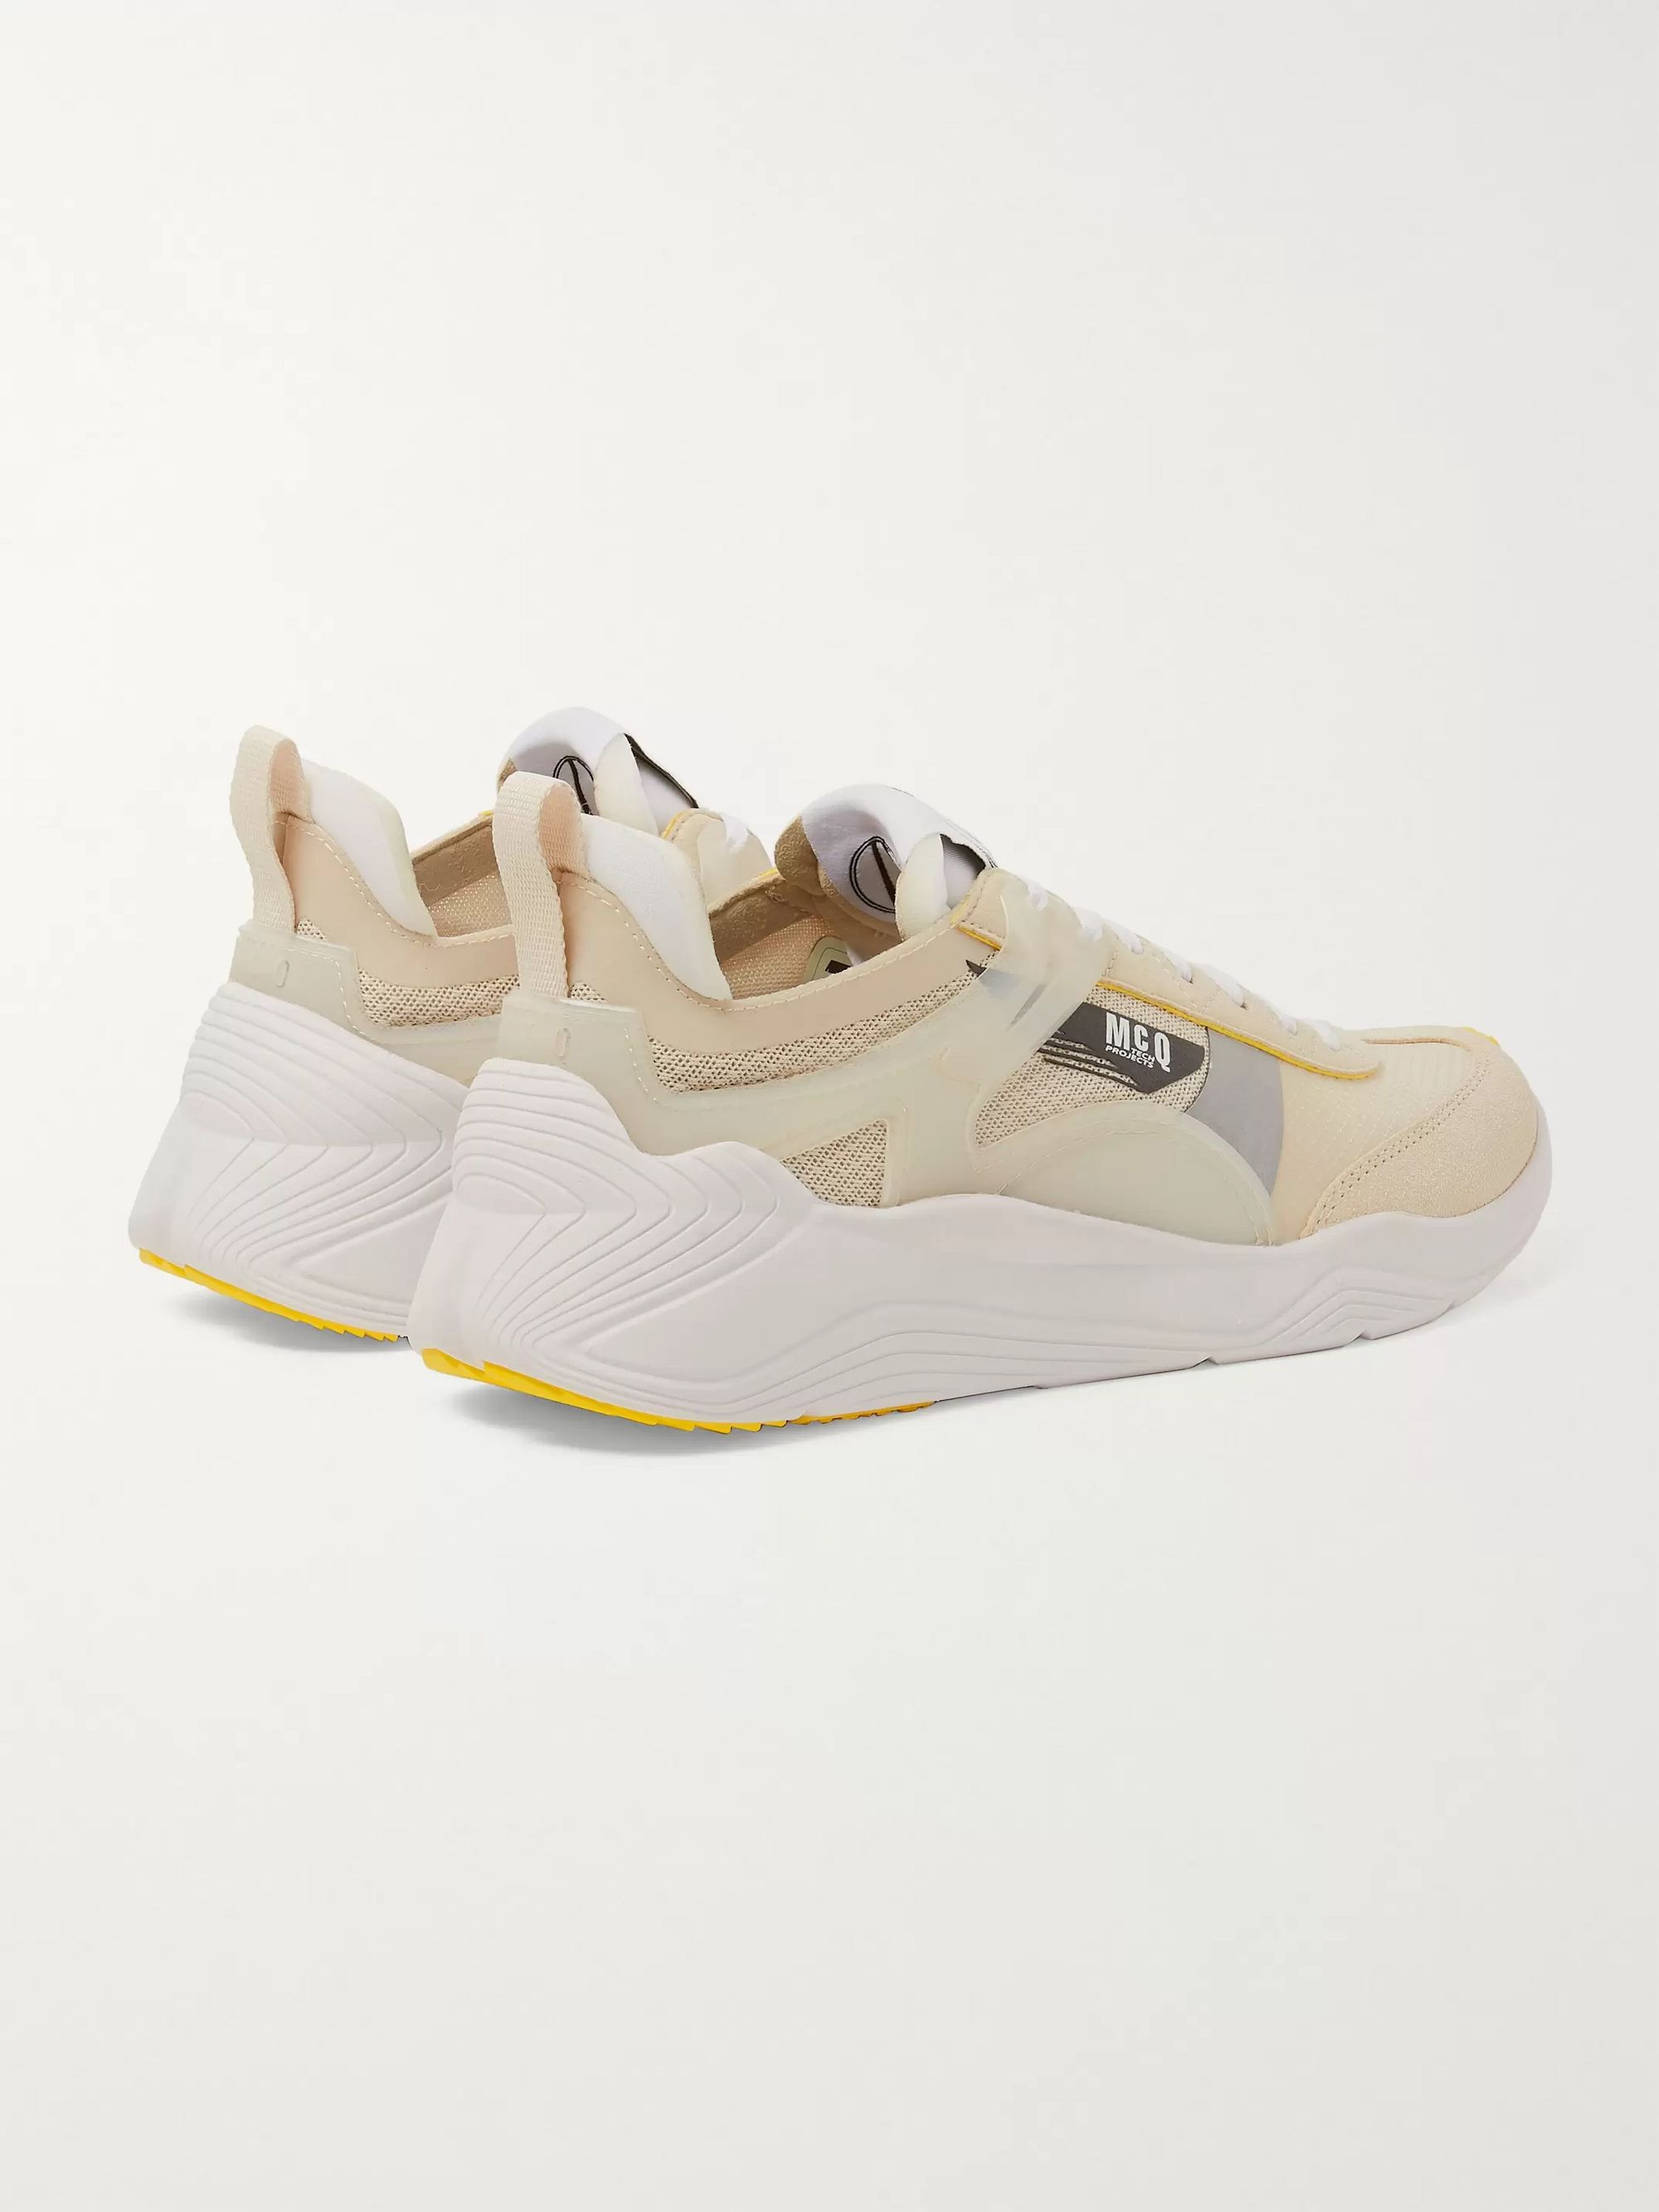 McQ Alexander McQueen Gishiki Pro Rubber-Trimmed Suede, Mesh and Ripstop Sneakers